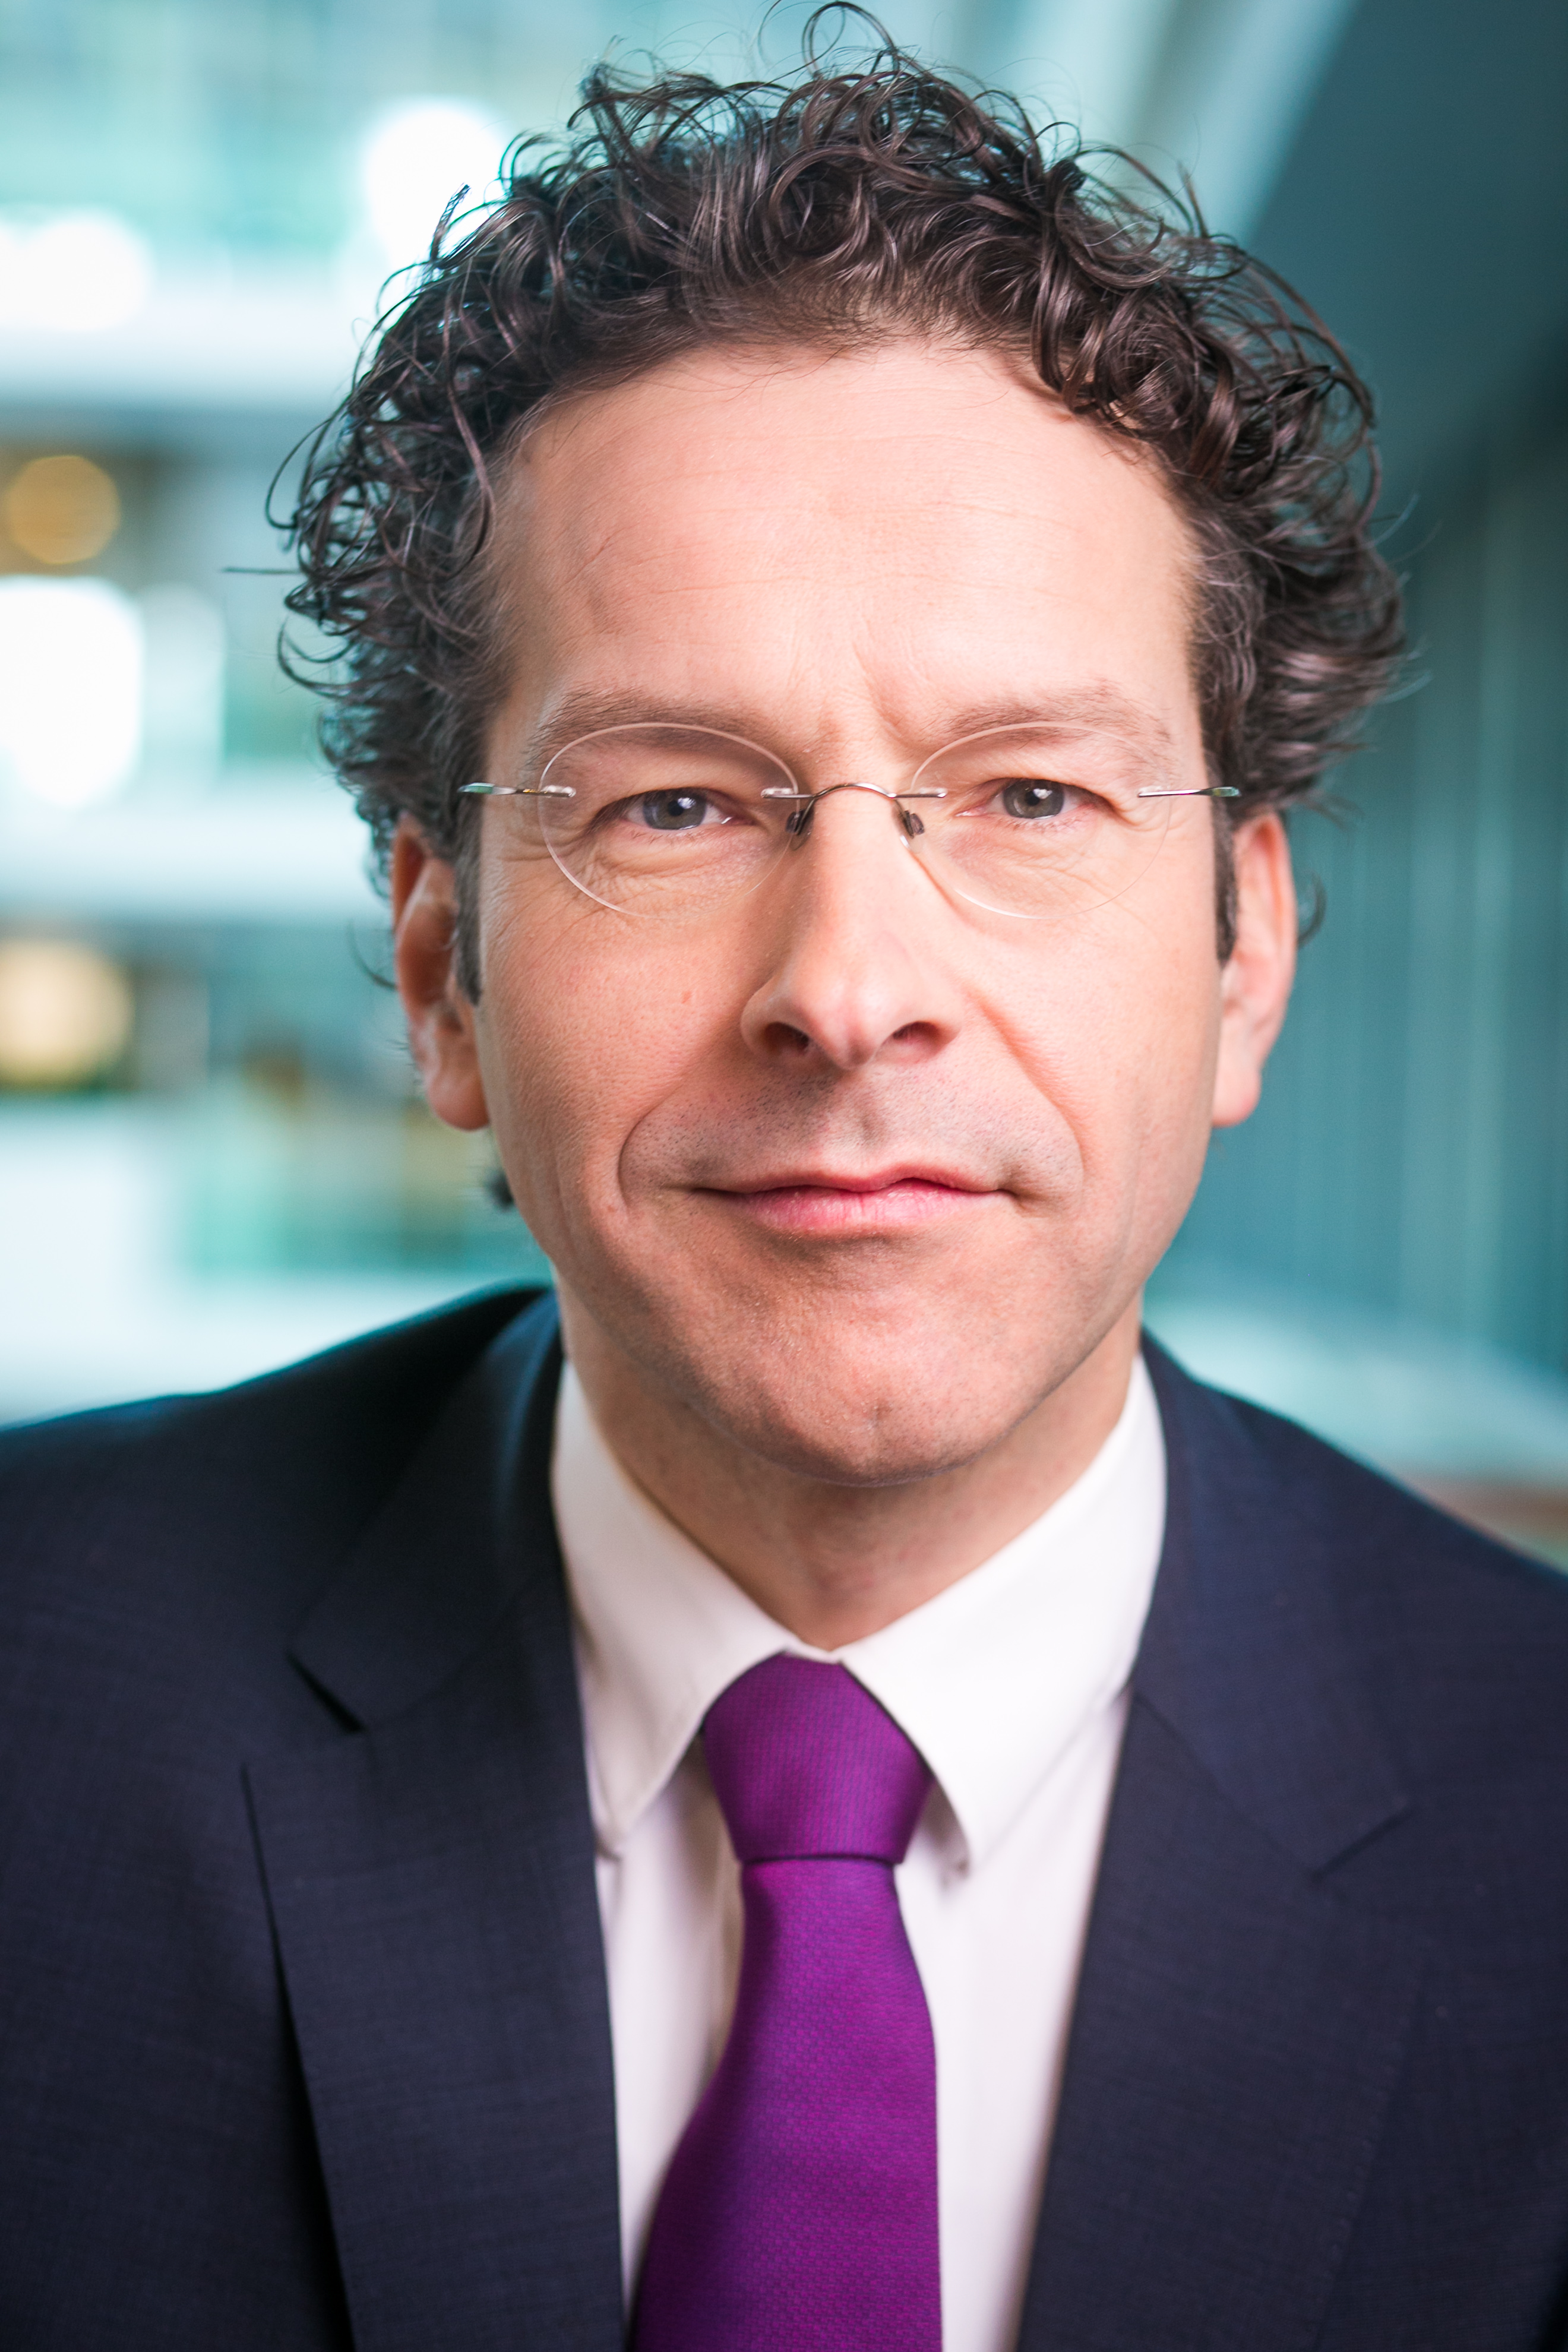 The 54-year old son of father (?) and mother(?) Jeroen Dijsselbloem in 2021 photo. Jeroen Dijsselbloem earned a  million dollar salary - leaving the net worth at 0.8 million in 2021